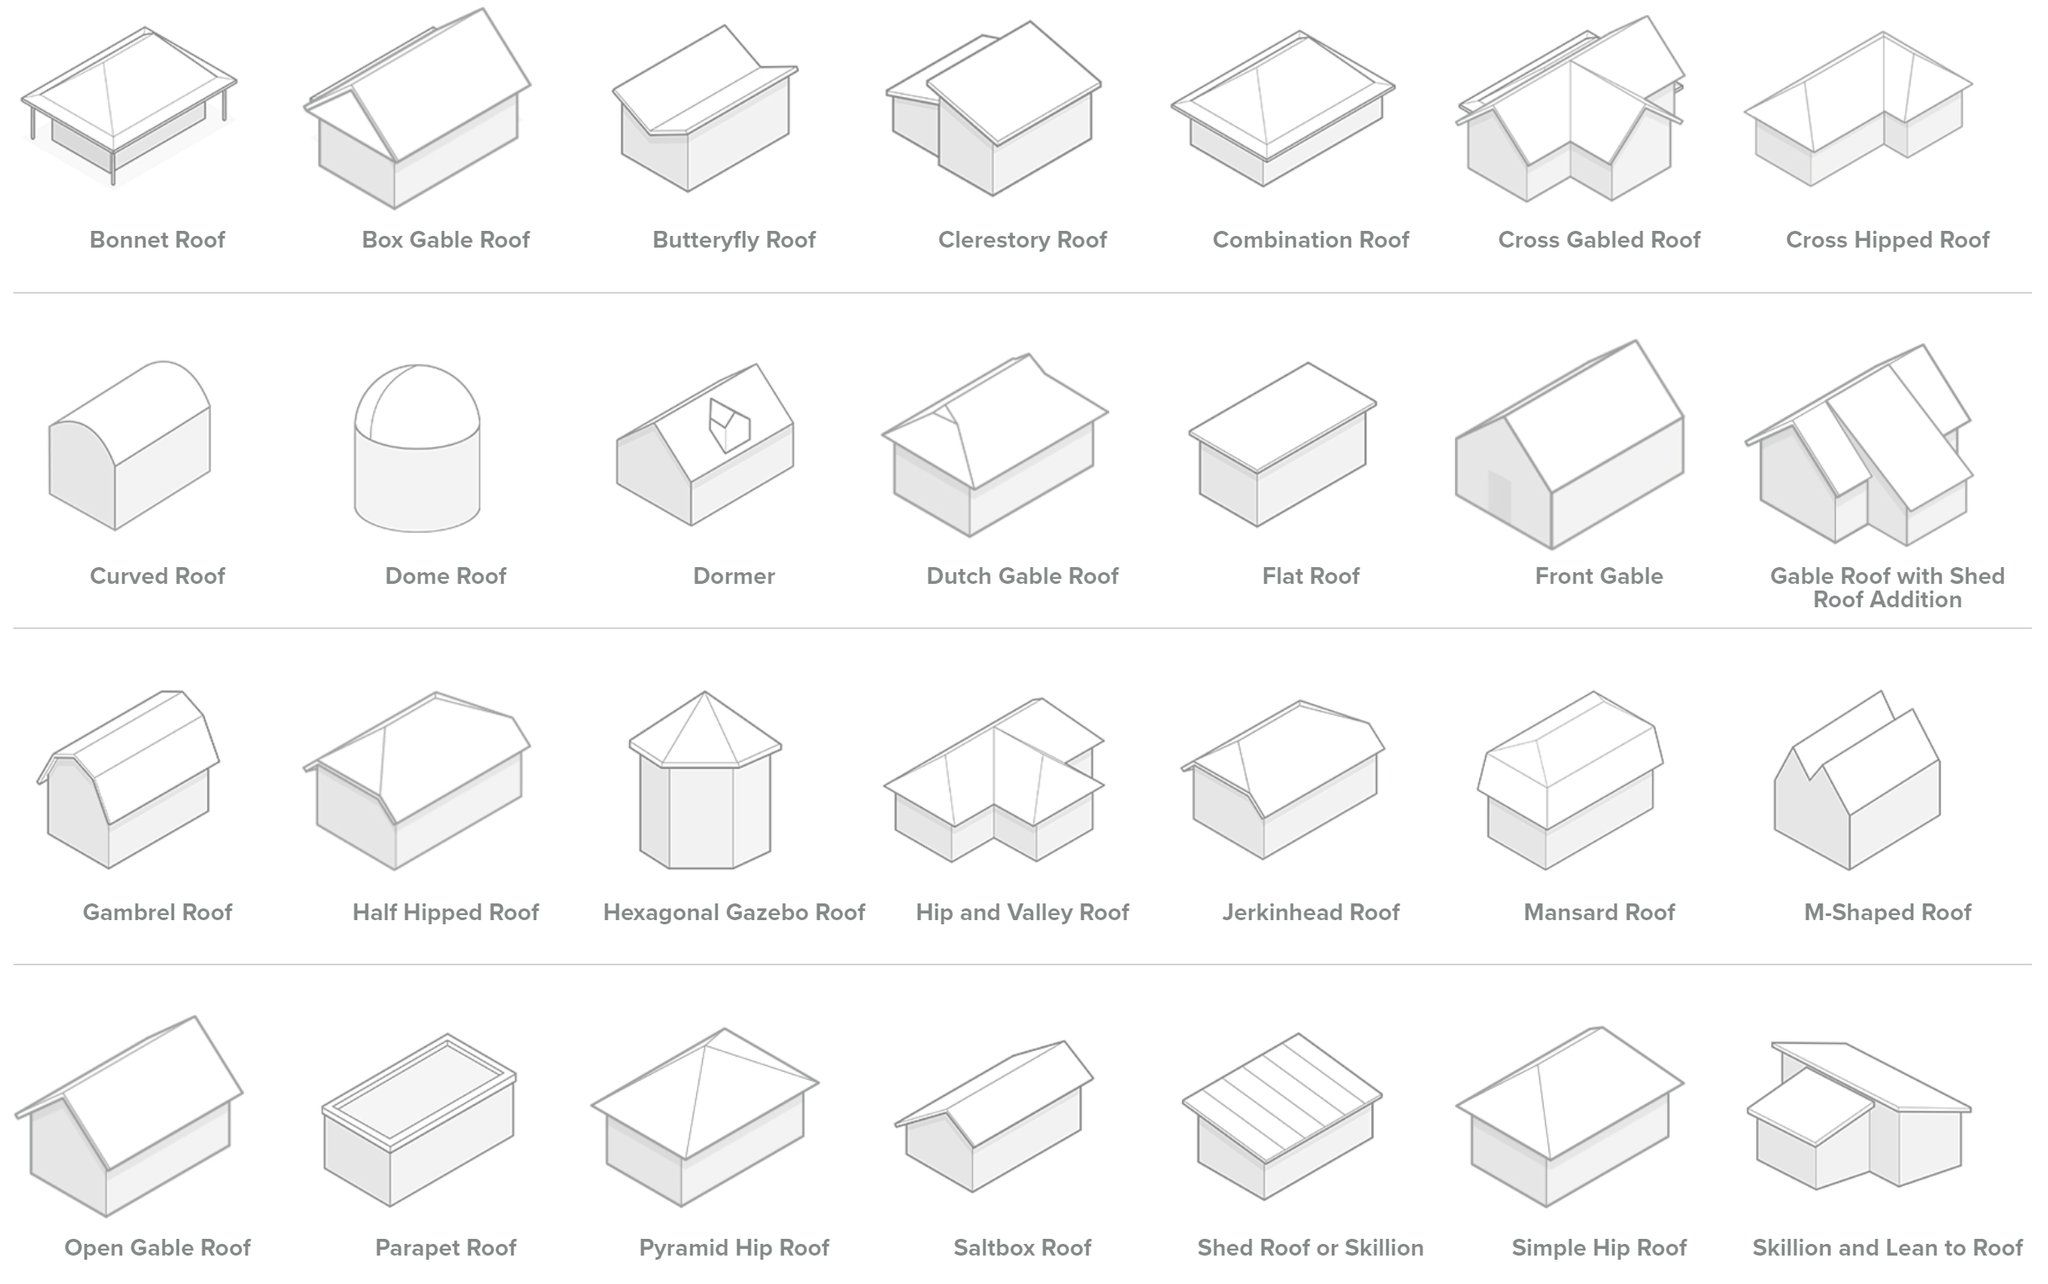 Found A Cool Reference For Roofing Types For 3d 2d Artists Looking To Put Names To Designs Https T Co N8eokhc7kg Game Level Design Map Diagram Design